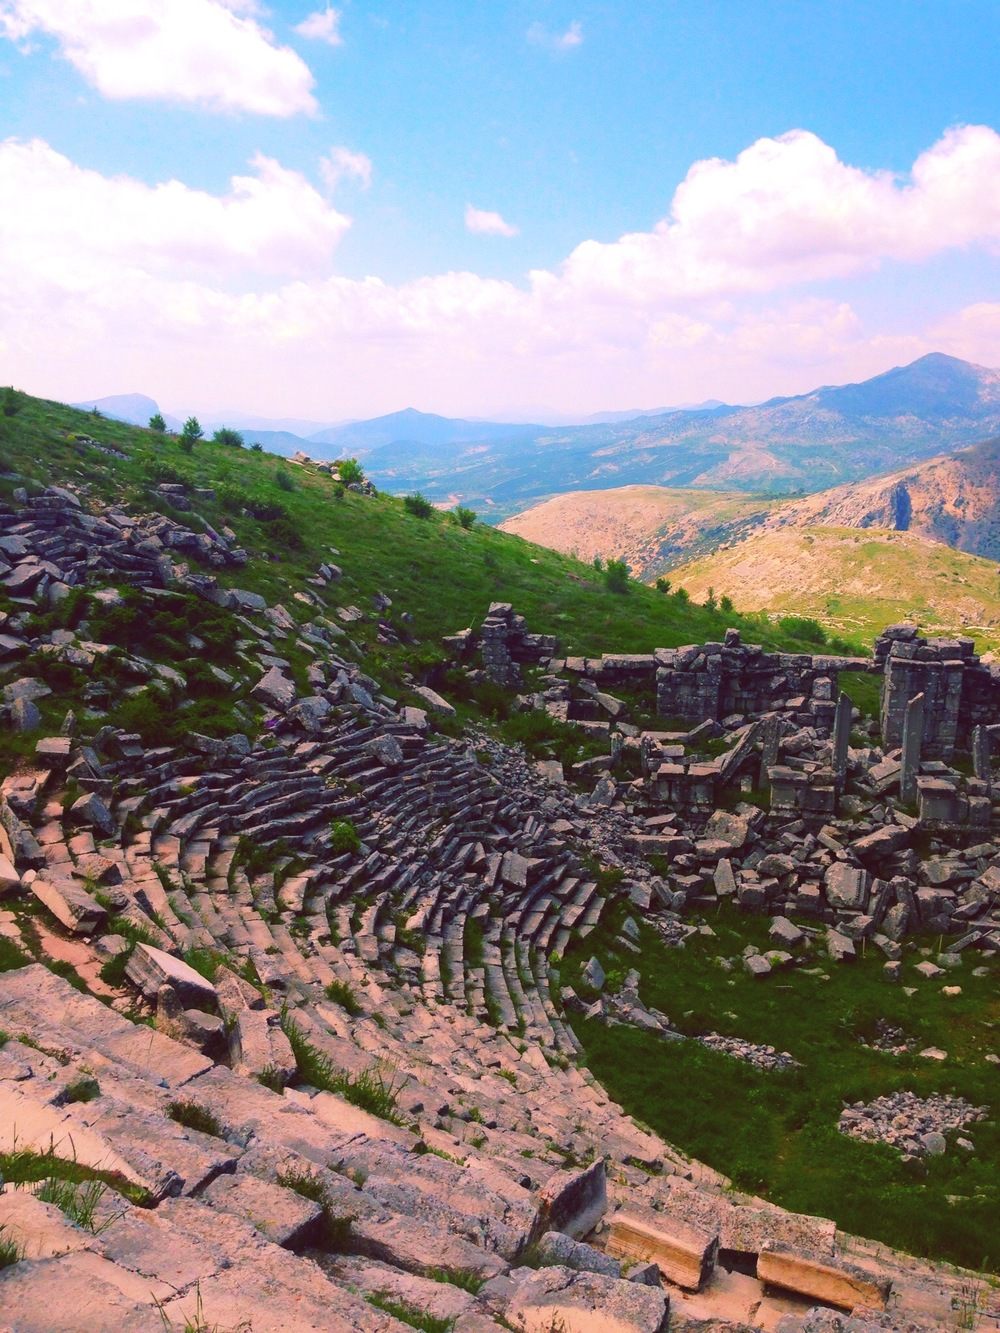 Amphitheatre in the ancient city Termessos, in the western Taurus Mountains.